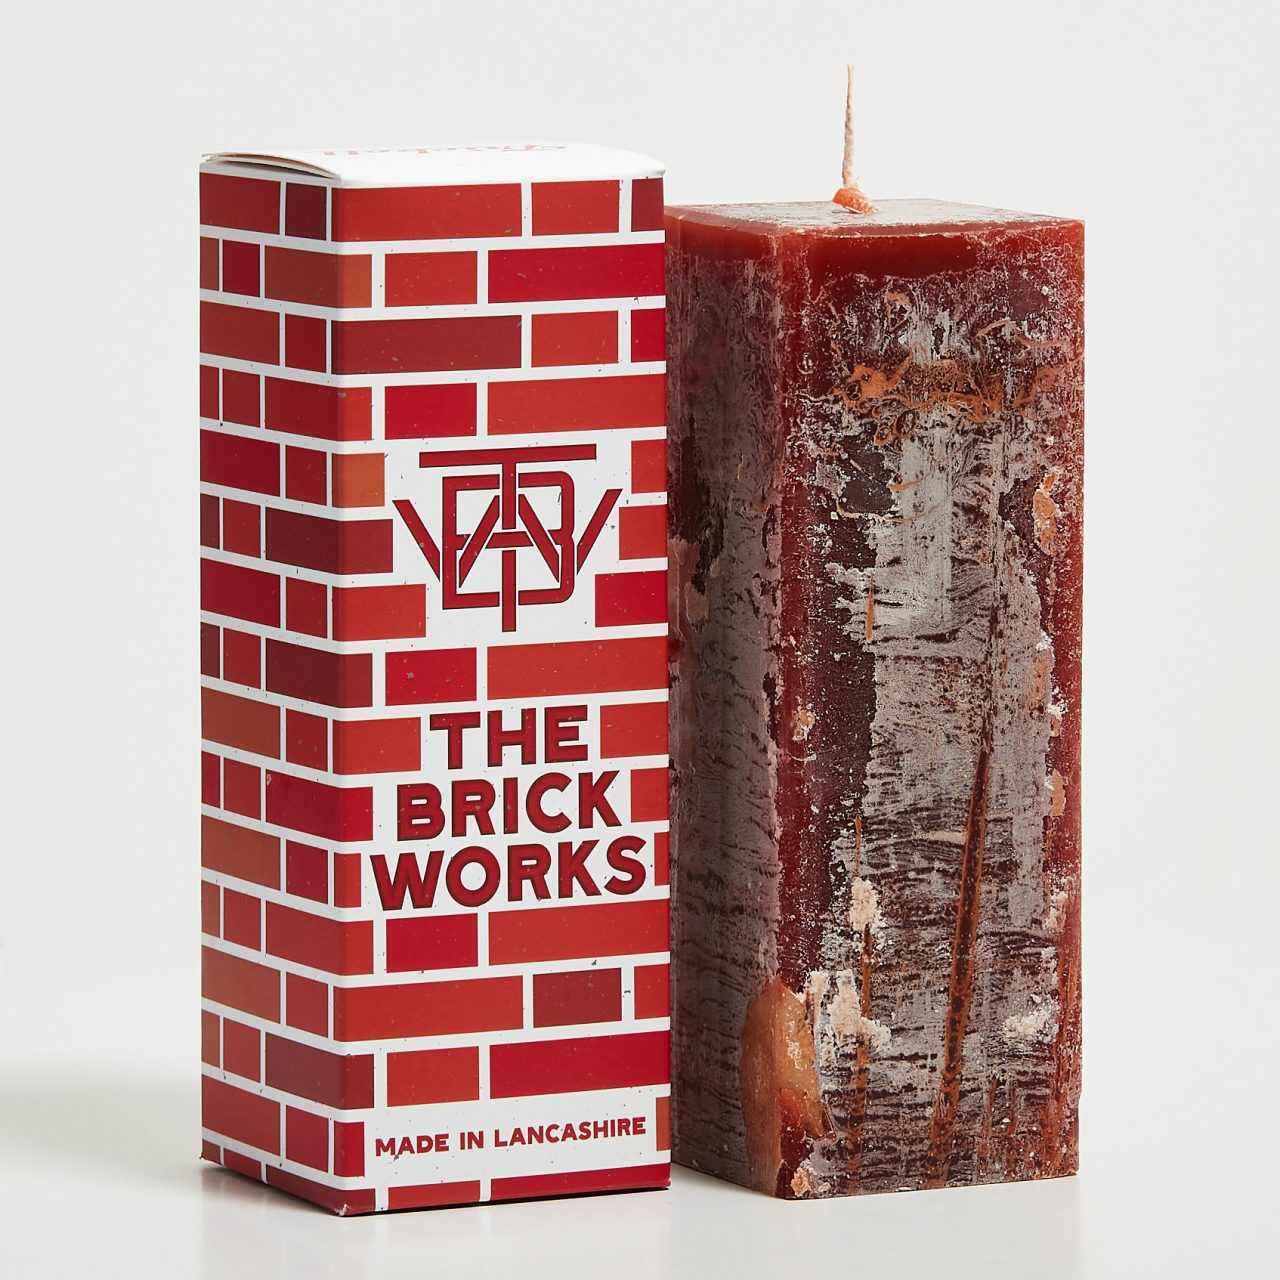 The Brickworks Candle